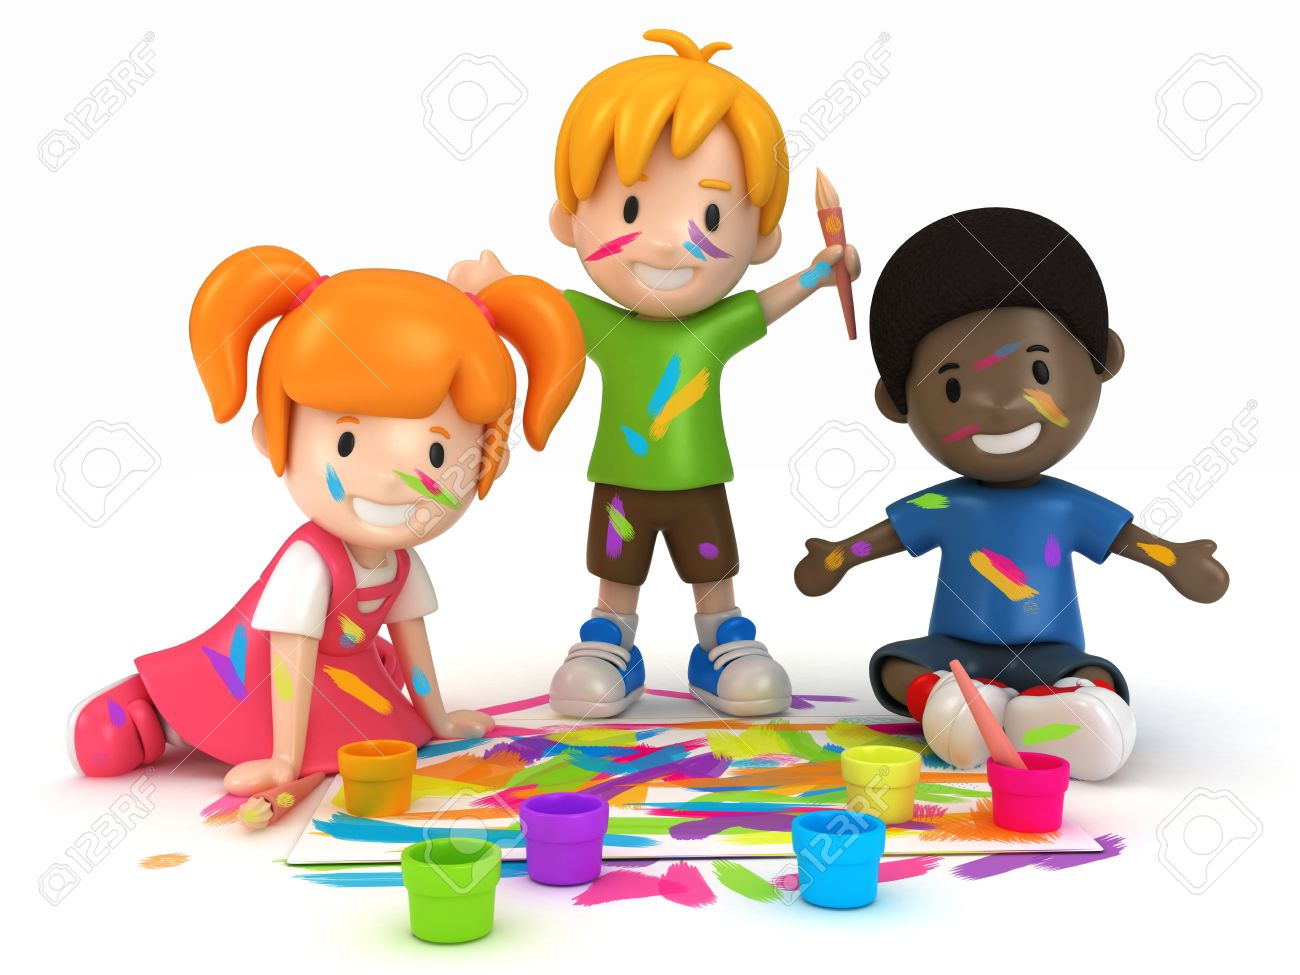 Kids painting clipart » Clipart Station.